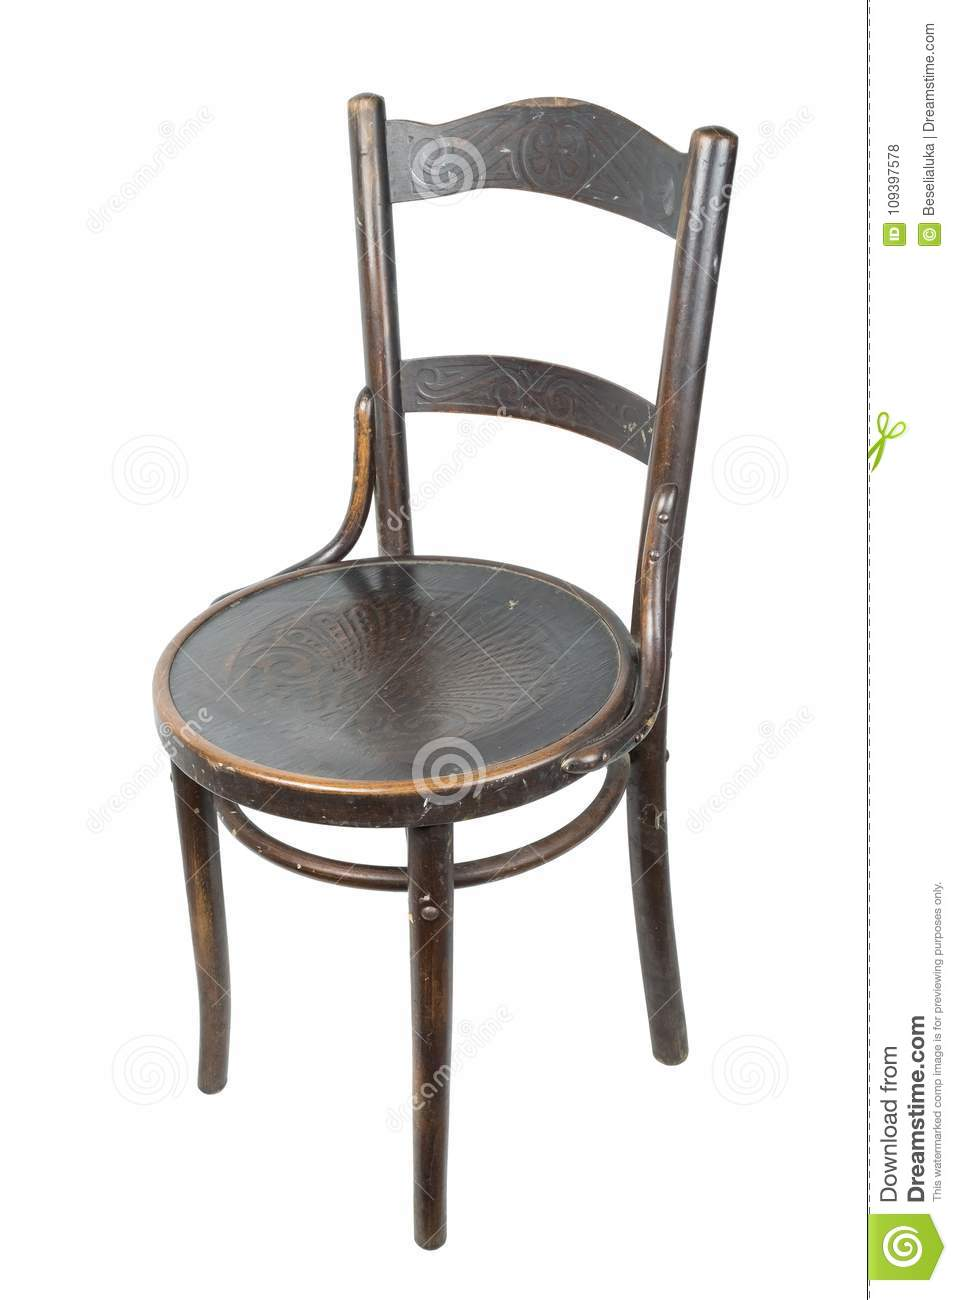 vintage wooden chairs eames aluminum chair an old stock photo image of brown soiled on a white background isolated